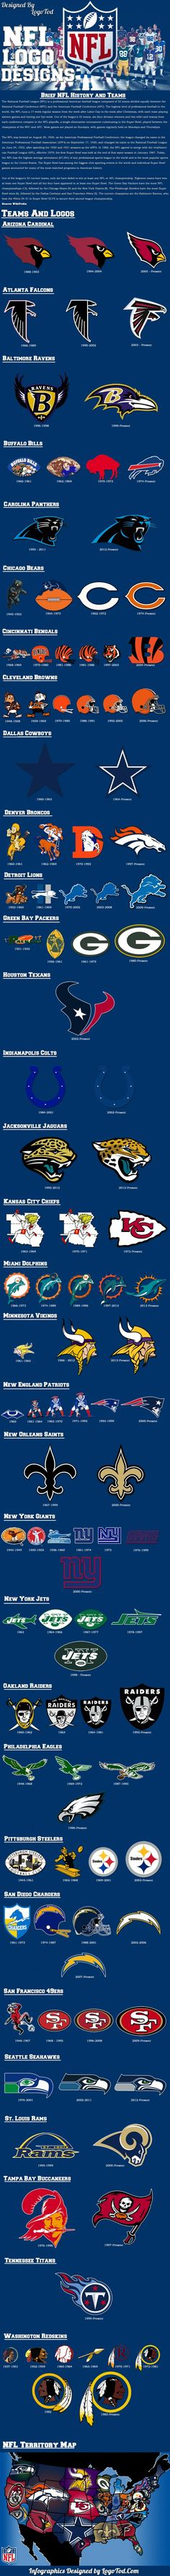 History of NFL Logo Designs with Territory Map Nfl Team Logos 809beef45